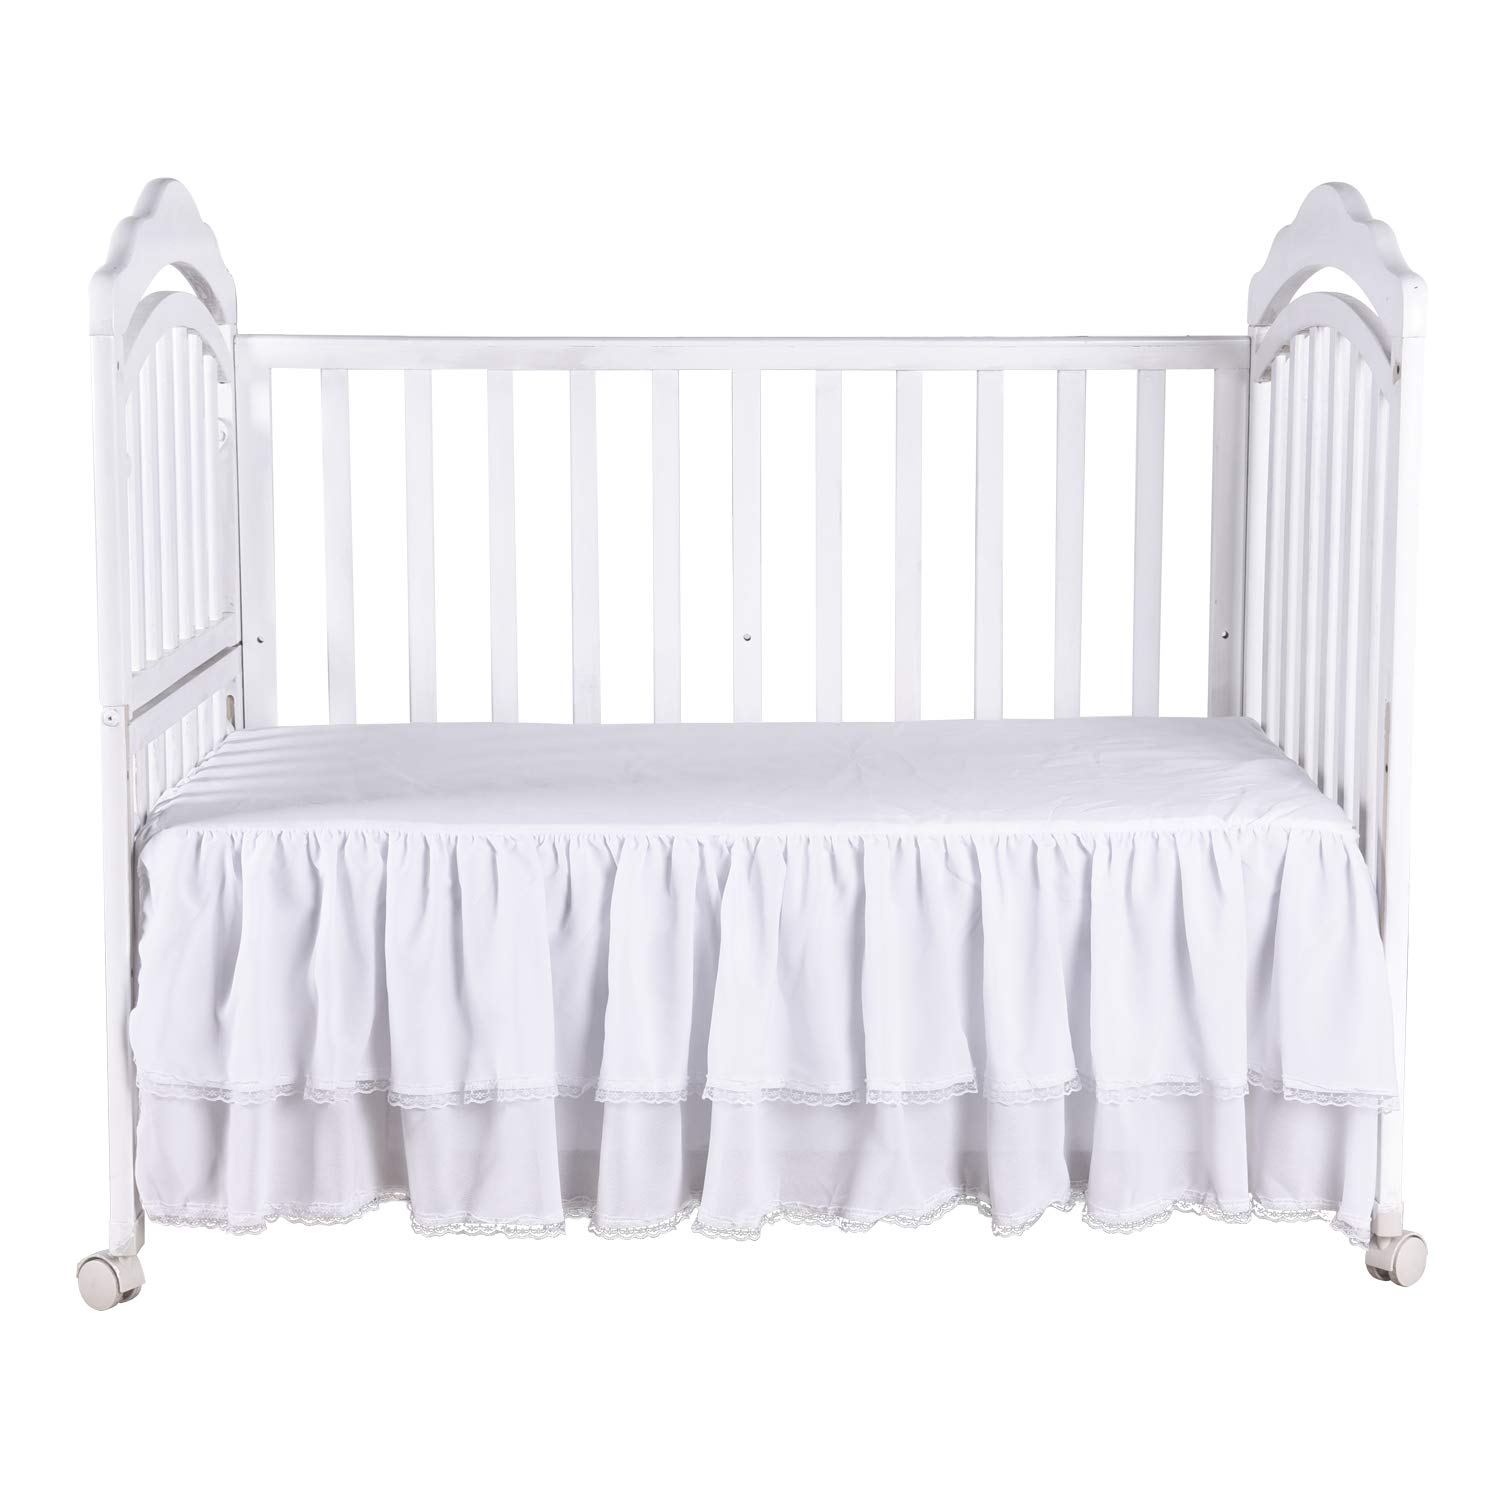 White Ruffle Crib Skirt with Lace Trim Nursery Crib Bed Skirt for Baby Boys and Girls 52 by 28 by 15 Inches by HB HBB MAGIC